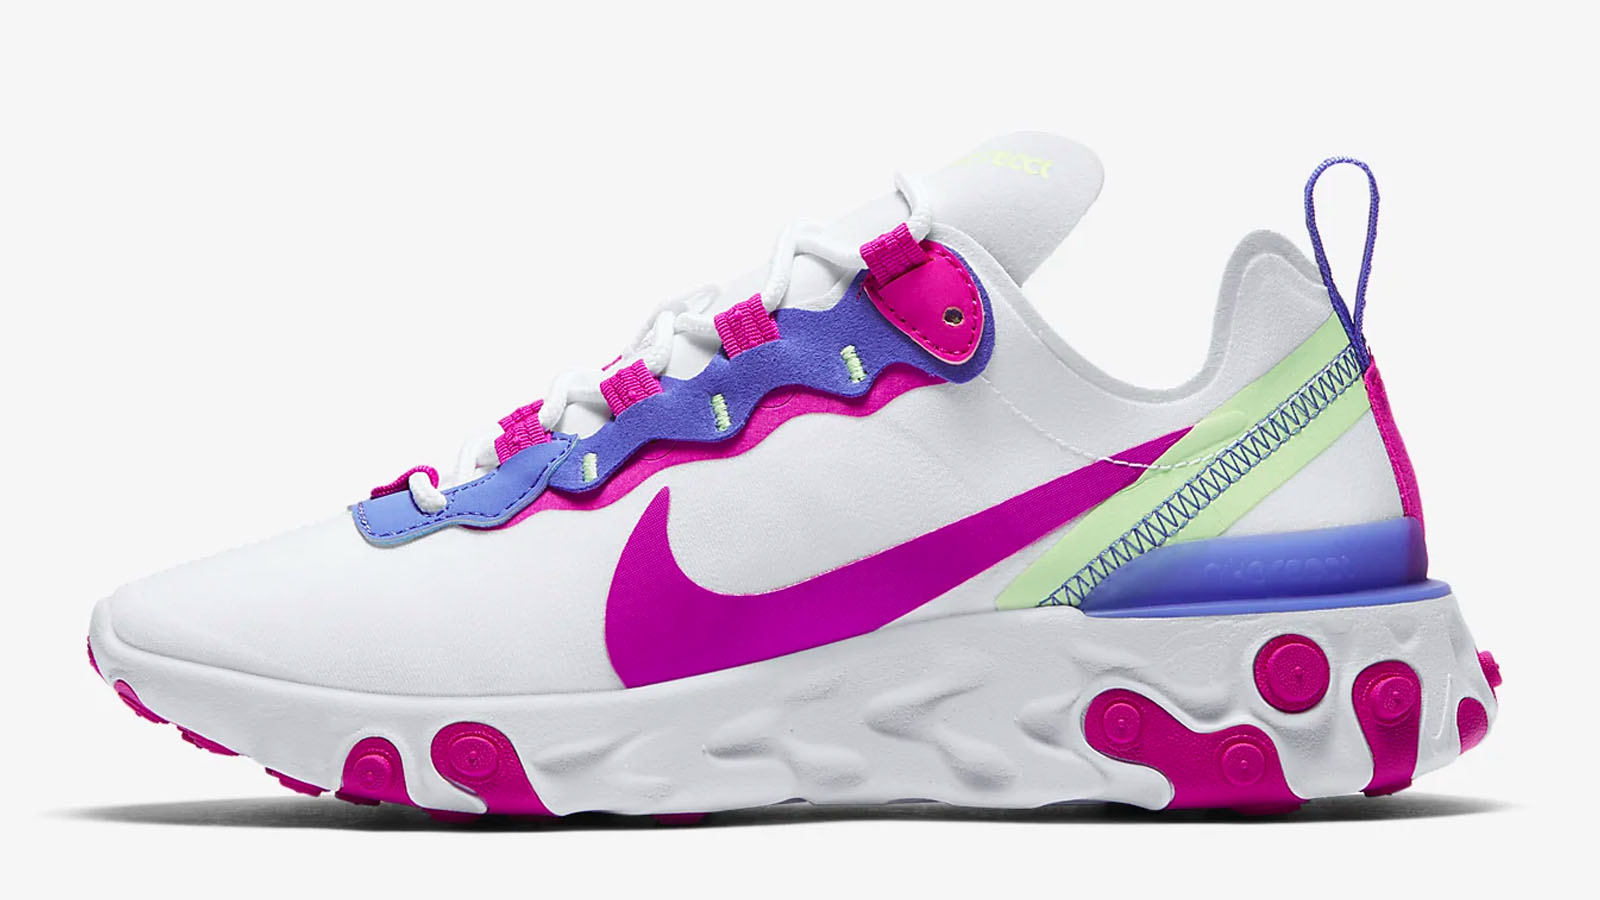 nike react element purple green